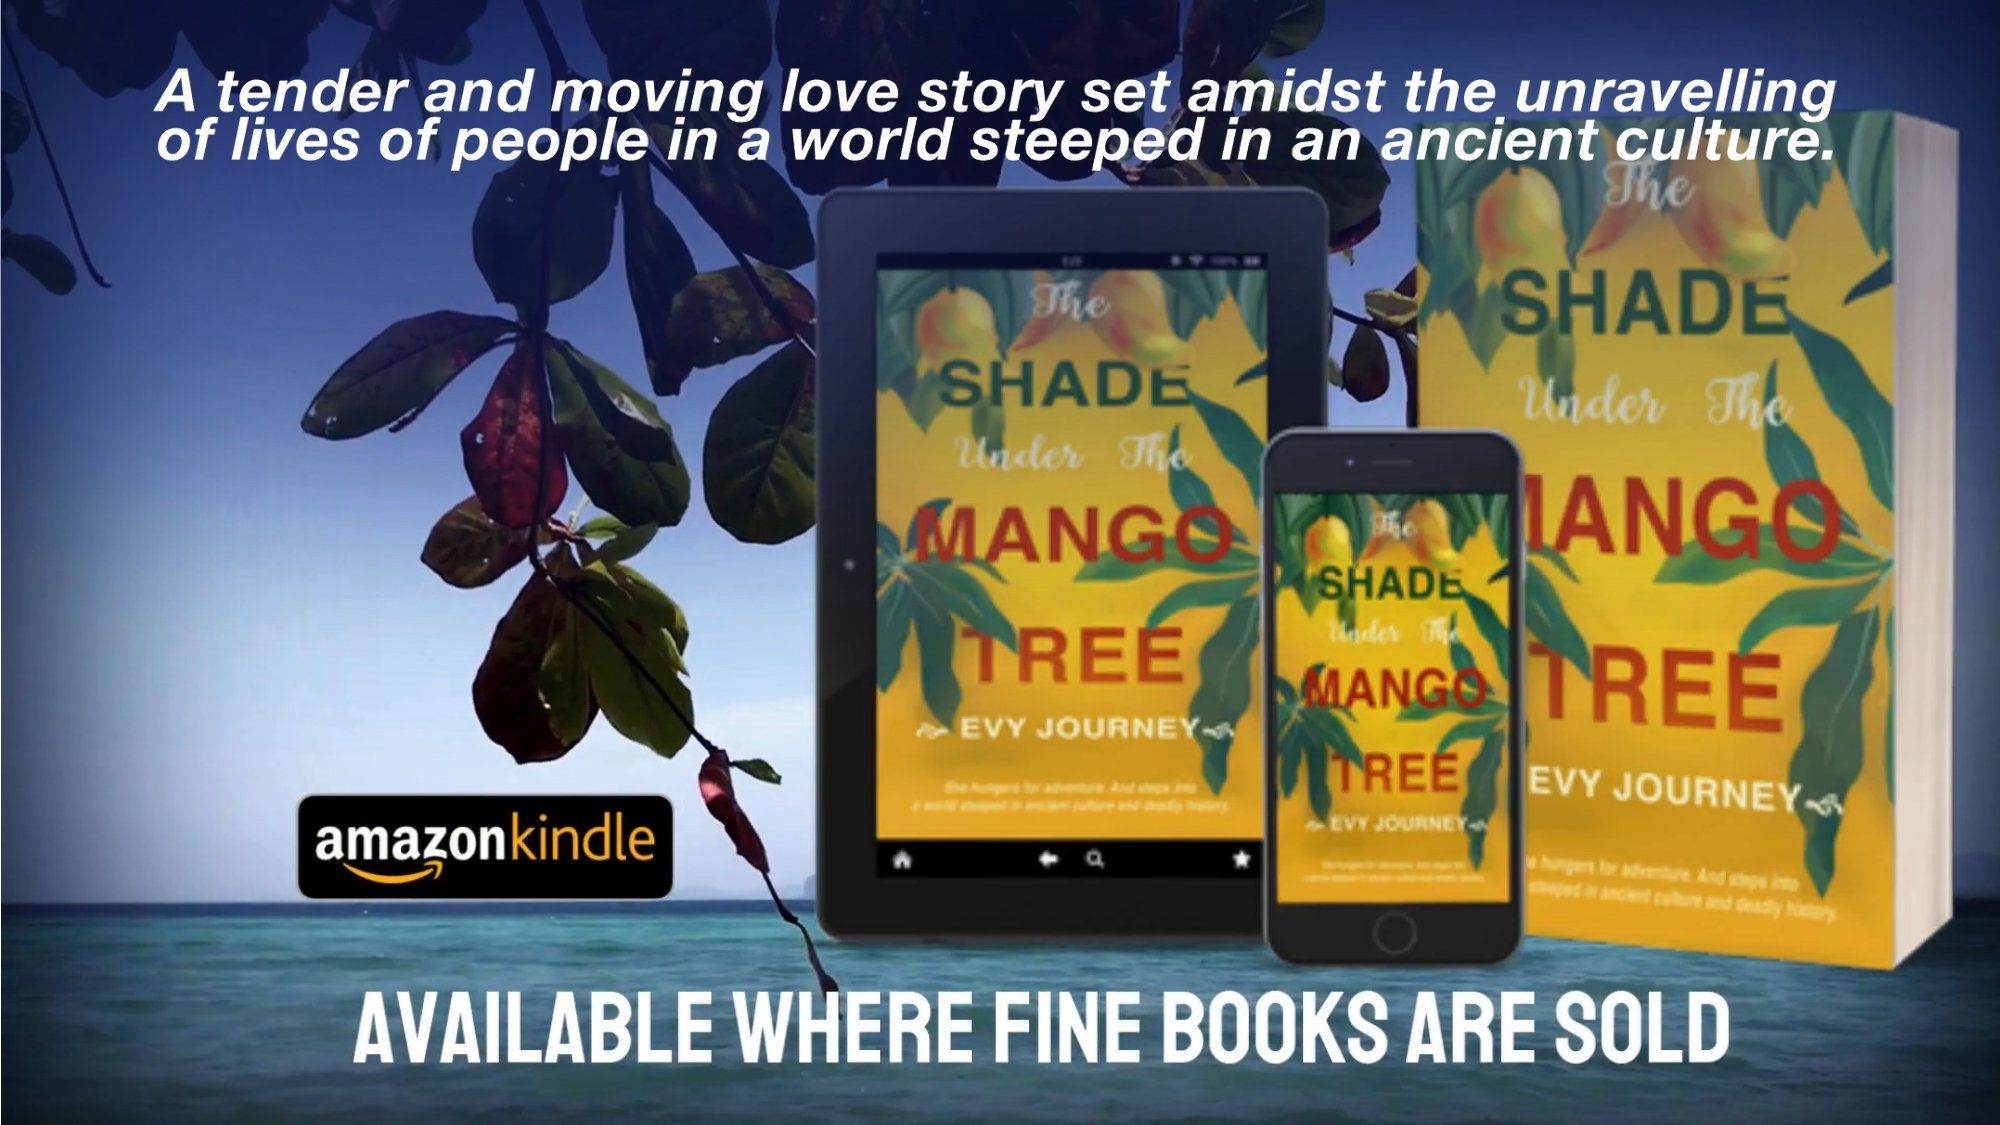 International Review of Books: The Shade Under the Mango Tree